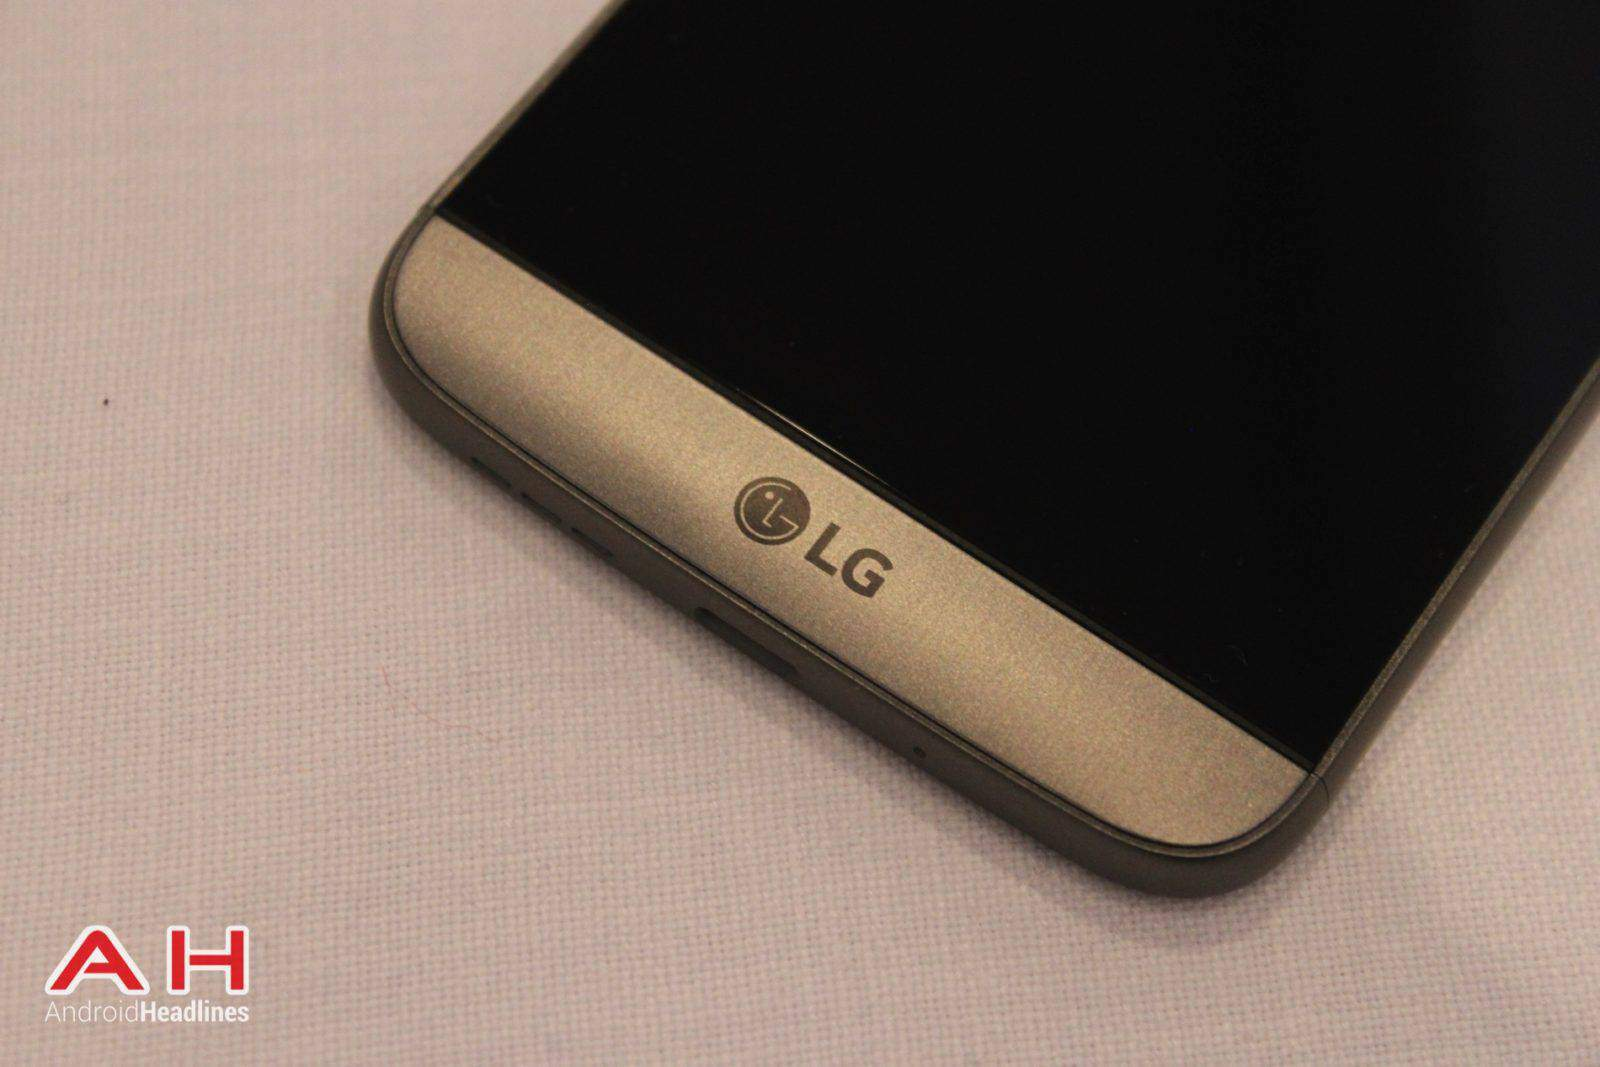 LG G5 Hands On MWC AH 05